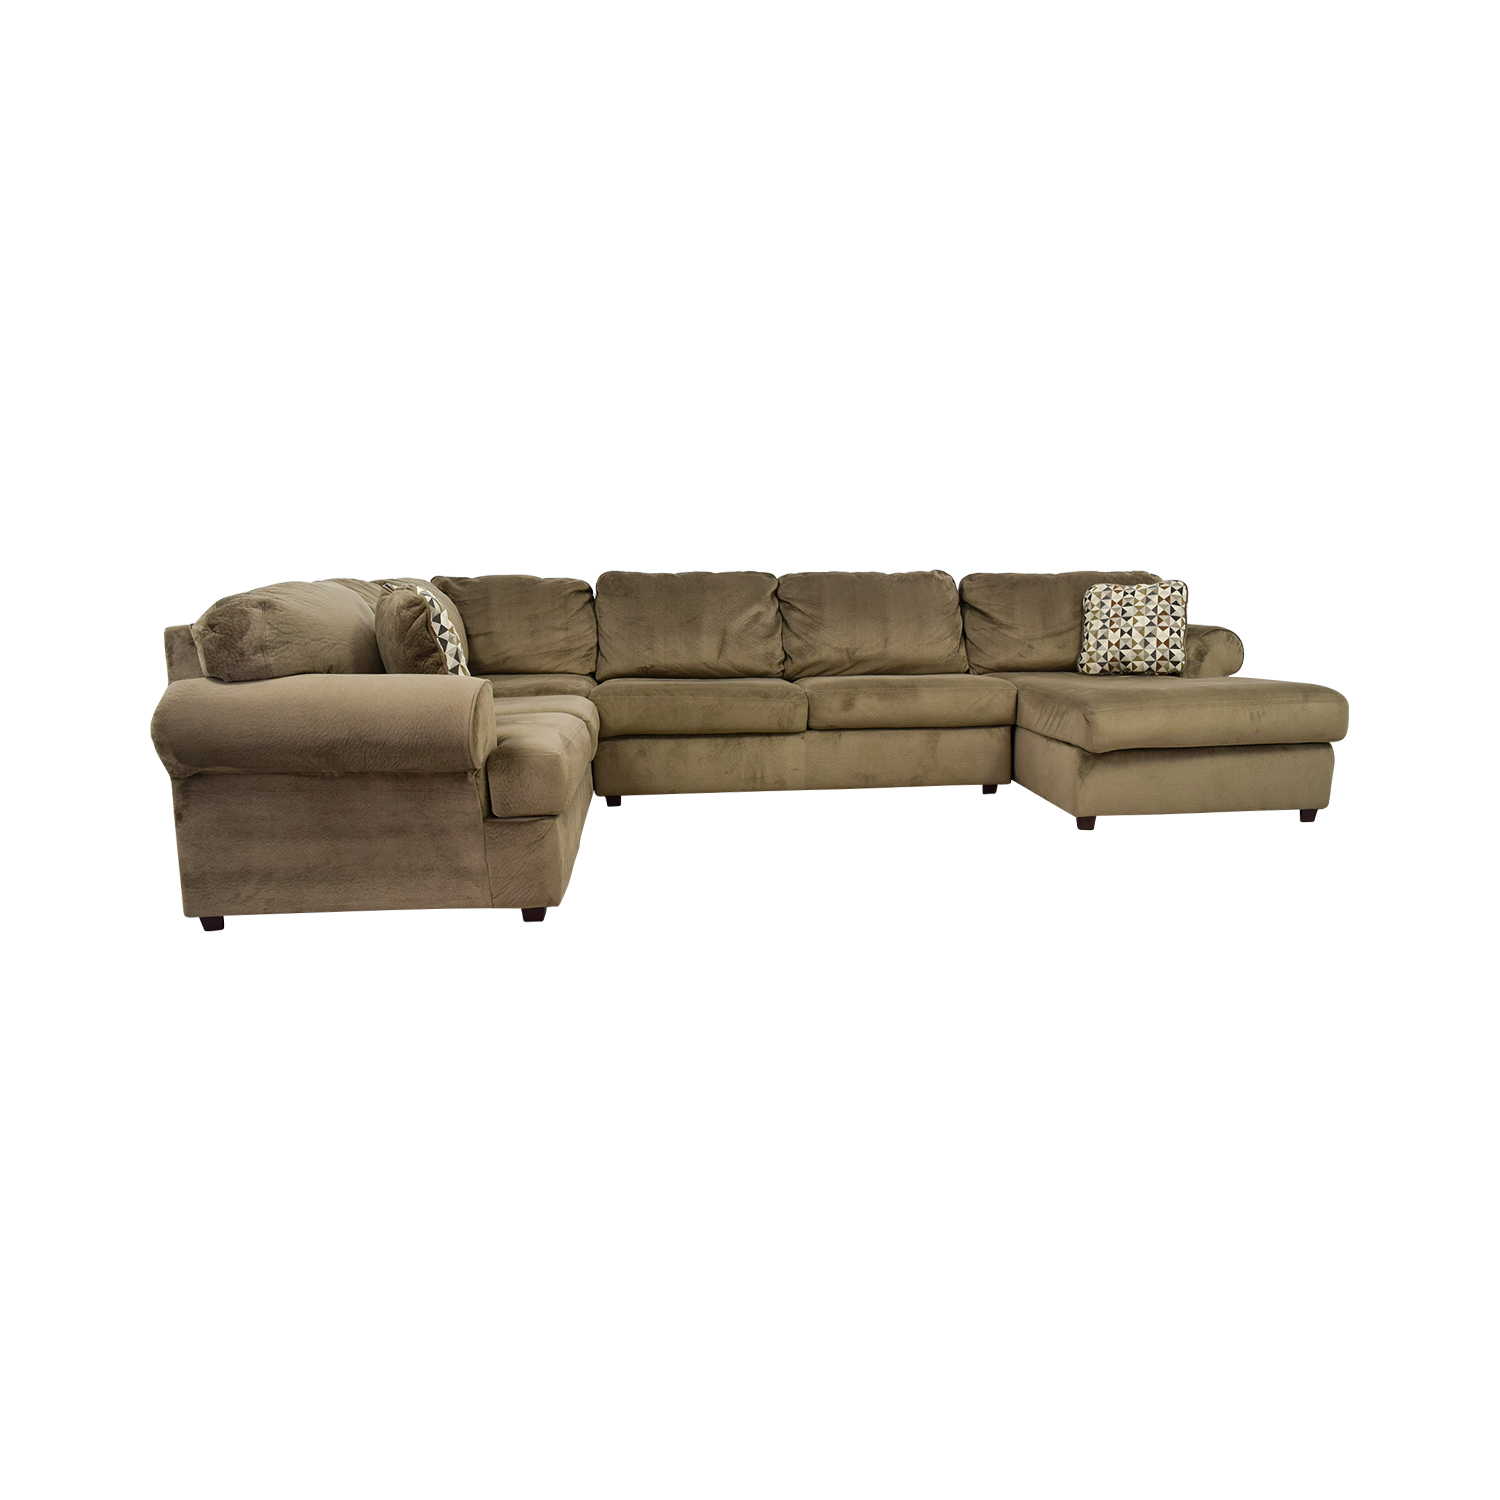 Ashley Furniture Ashley Furniture Jessa Place Sectional second hand